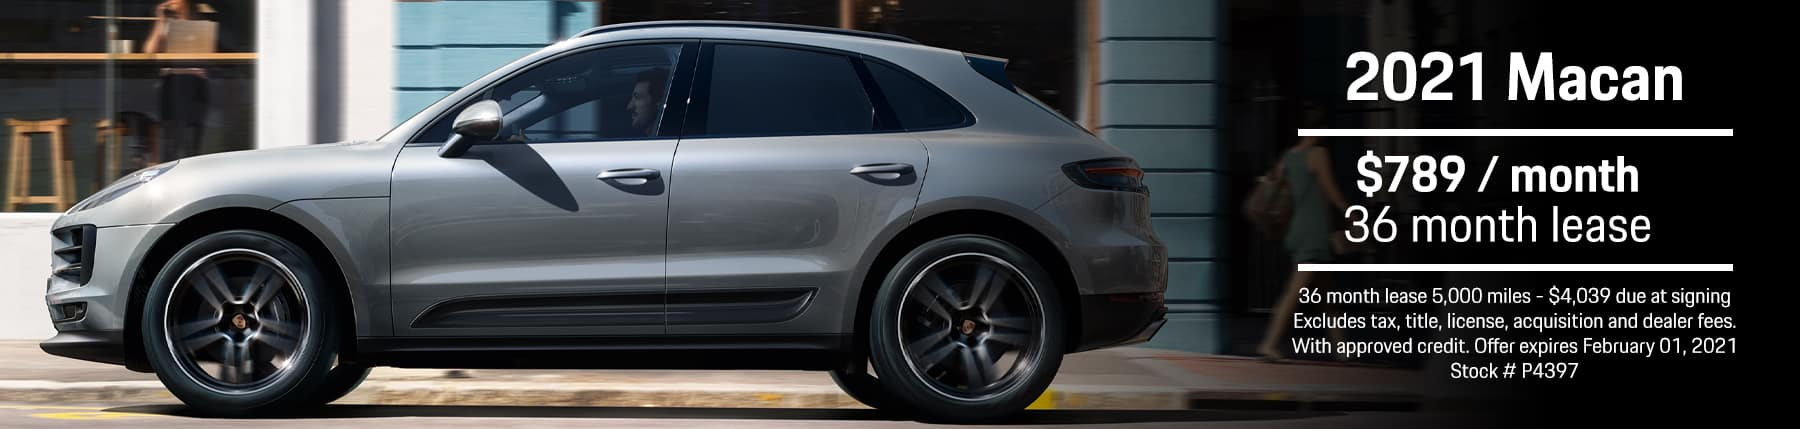 2021 Macan (Stock# P2397) Lease @ $789/month 36 month lease 5k miles.